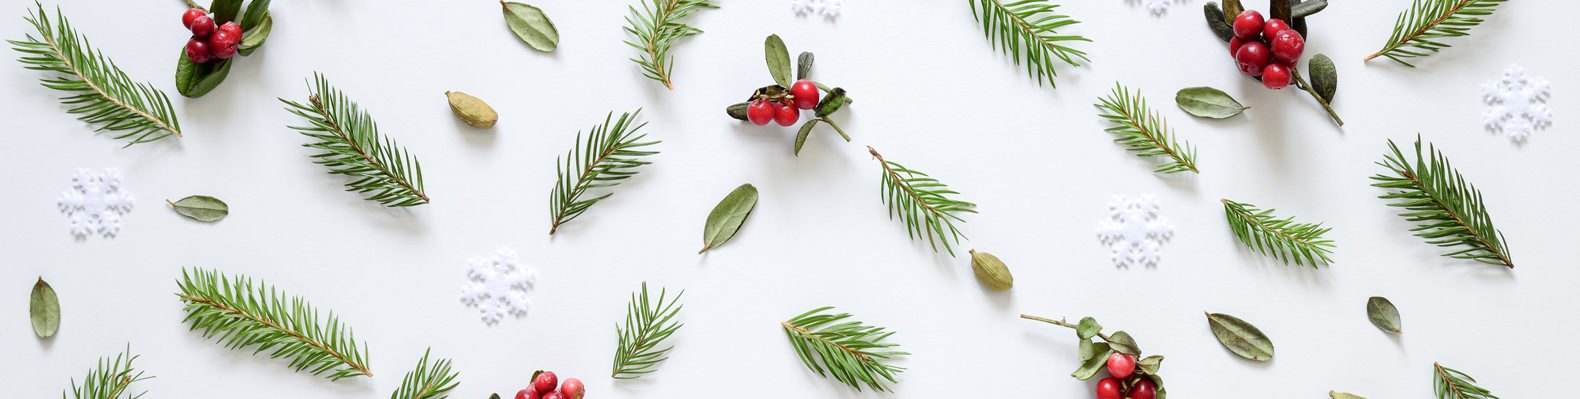 evergreen pines, winter berries and leaves on white background